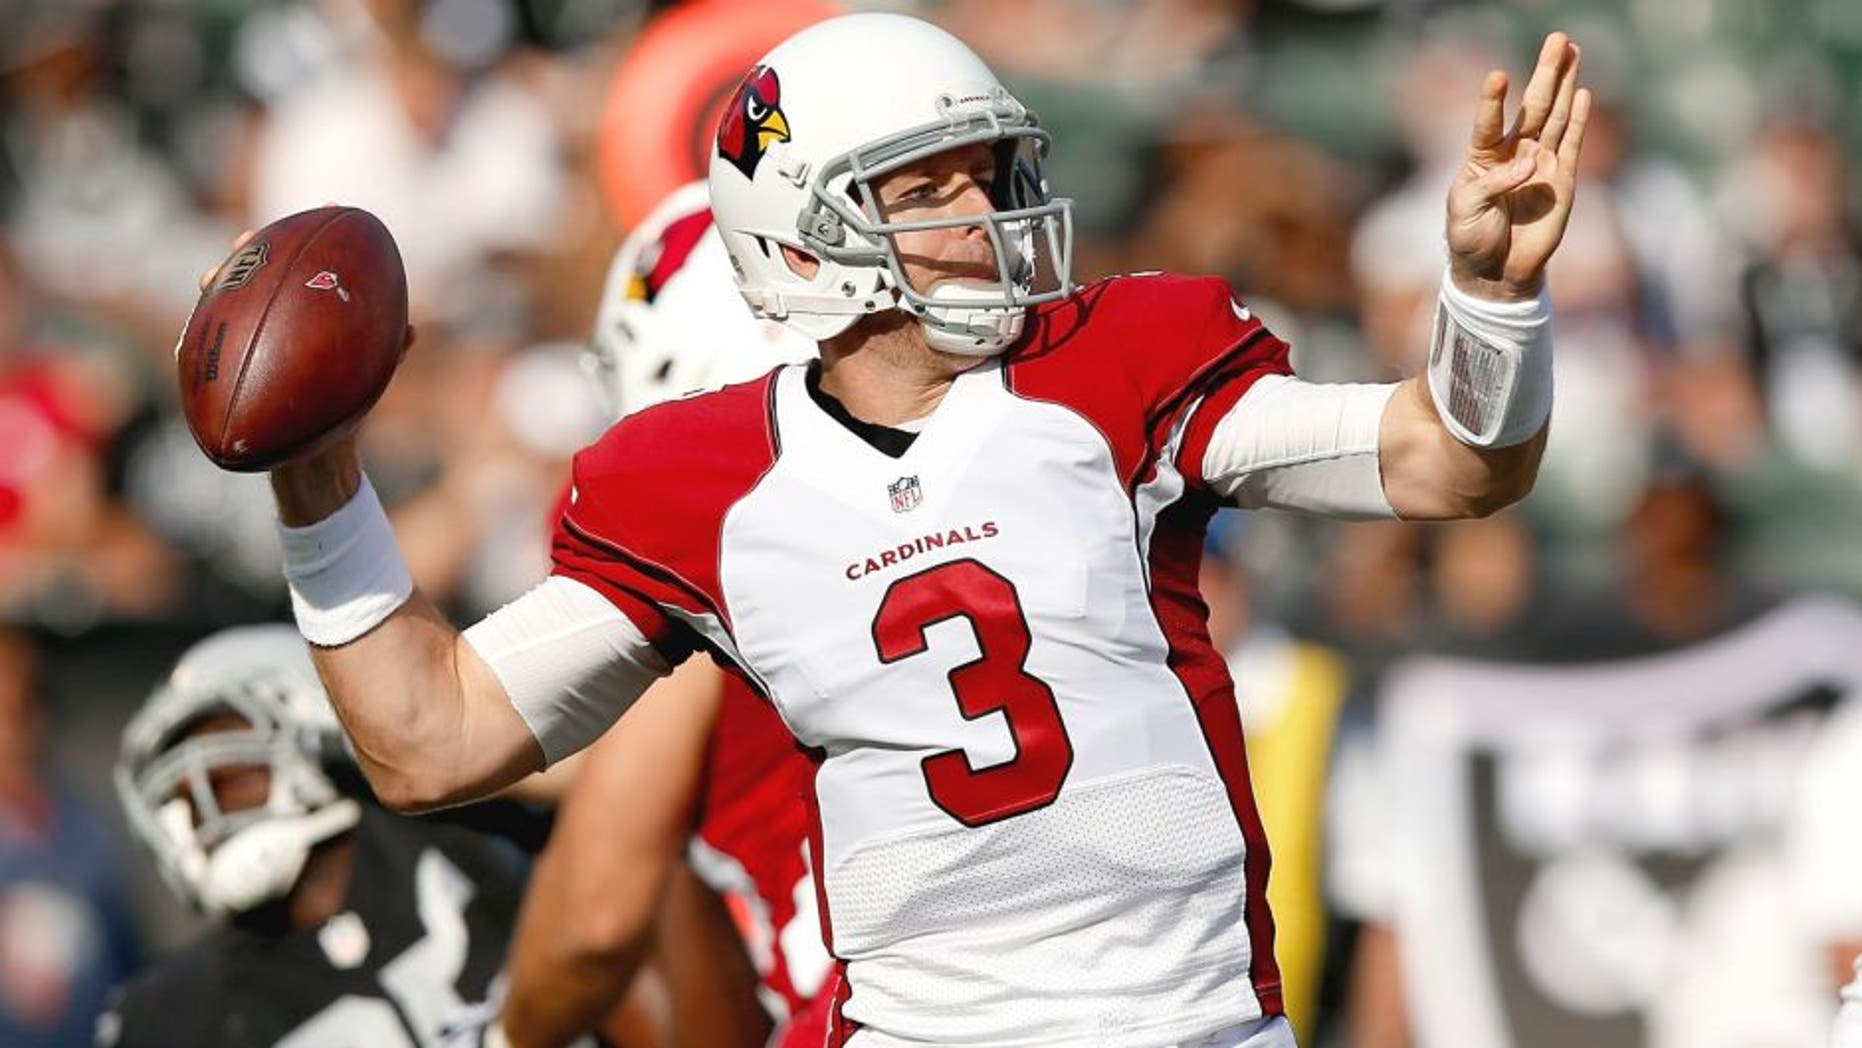 OAKLAND, CA - AUGUST 30: Carson Palmer #3 of the Arizona Cardinals throws the ball against the Oakland Raiders at O.co Coliseum on August 30, 2015 in Oakland, California. (Photo by Ezra Shaw/Getty Images)